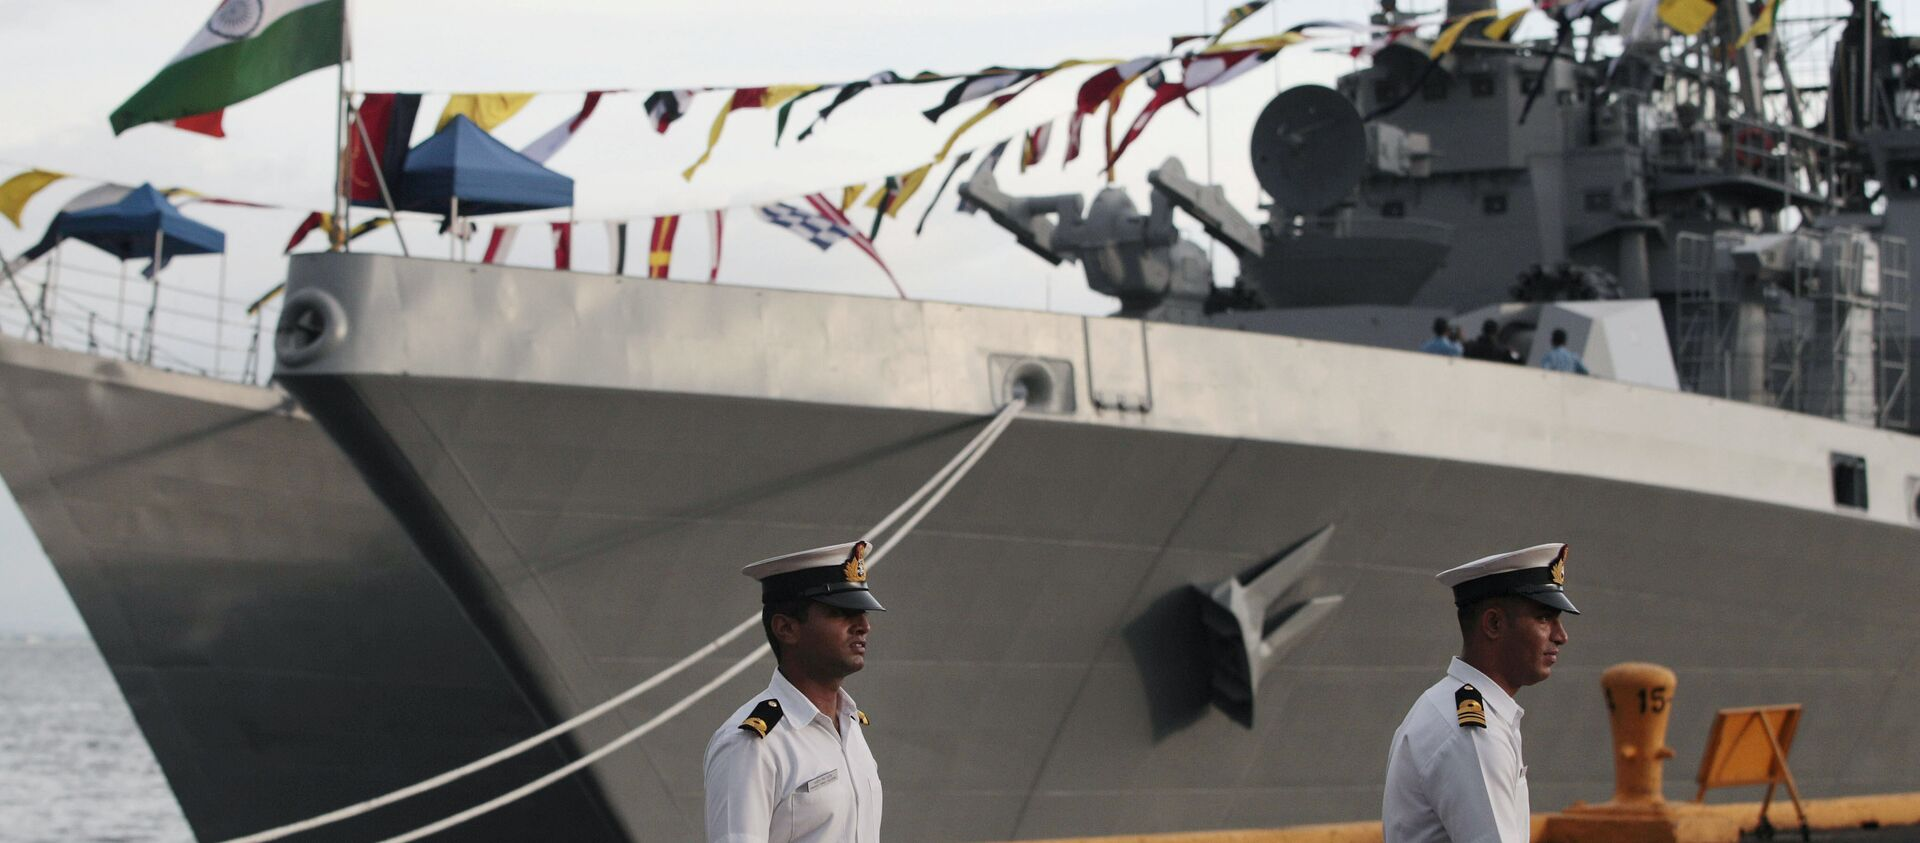 Indian sailors walk beside Indian Navy ships, from left, INS Ranvijay (D55), a Rajput class destroyer, and INS Saptura, a Shivalik-class stealth multi-role frigate, as they arrive at Berth 15, South Harbour, in Manila, Philippines on Wednesday, June 12, 2013 - Sputnik International, 1920, 02.08.2021